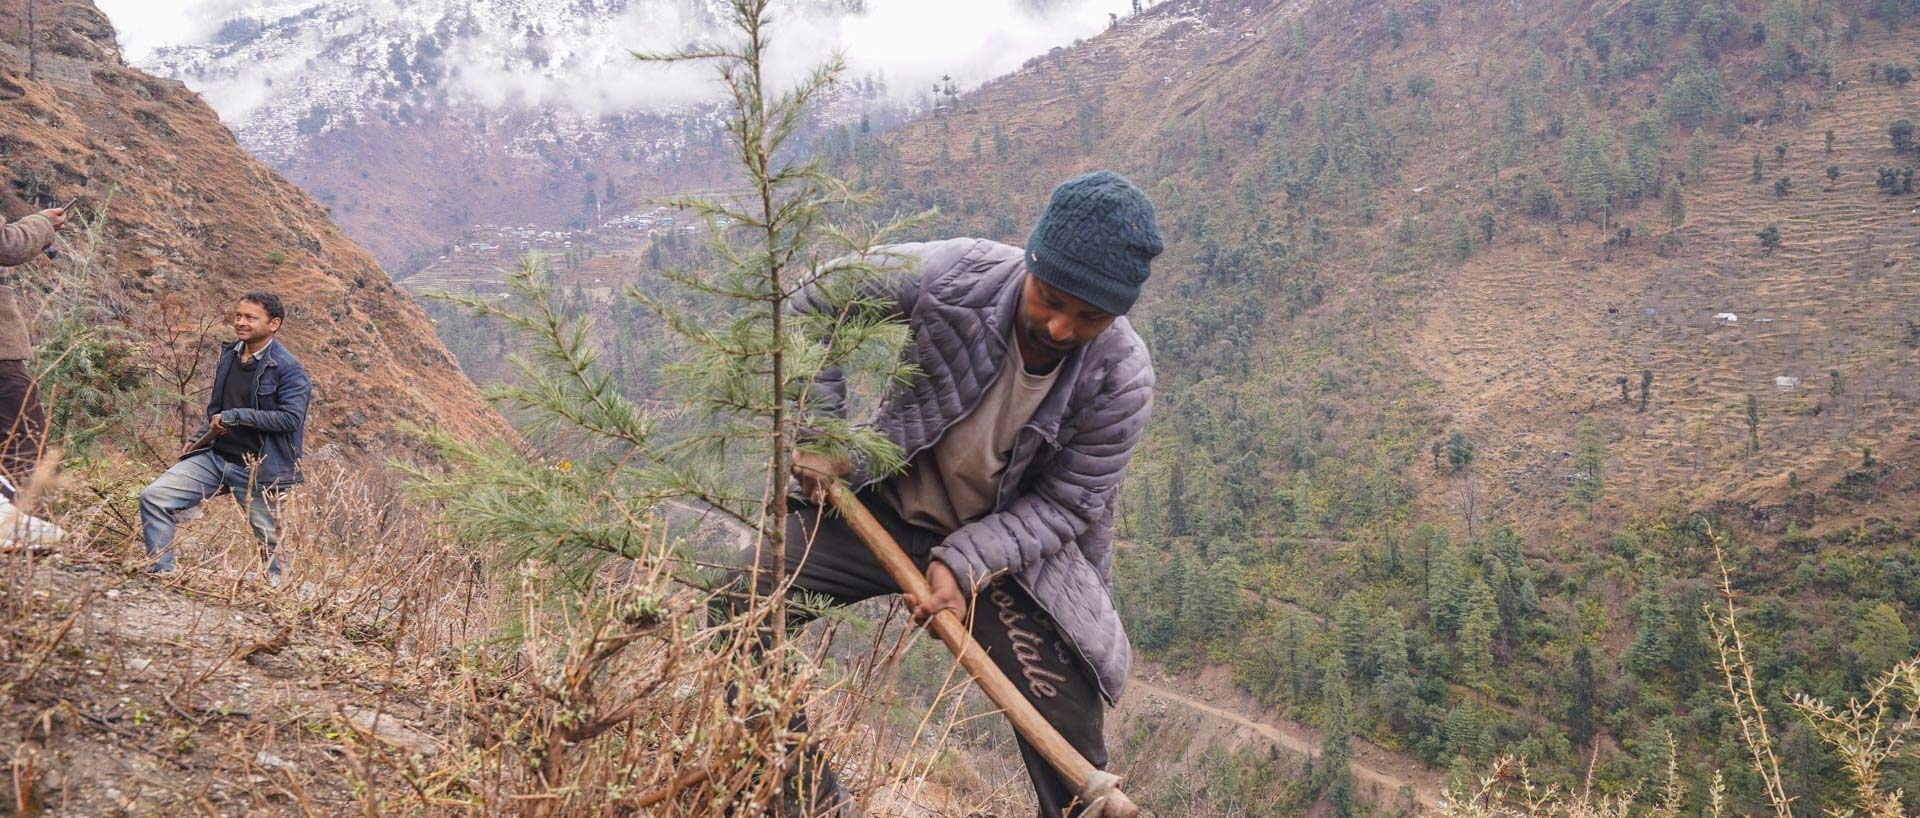 Our reforestation program in the Himalayas